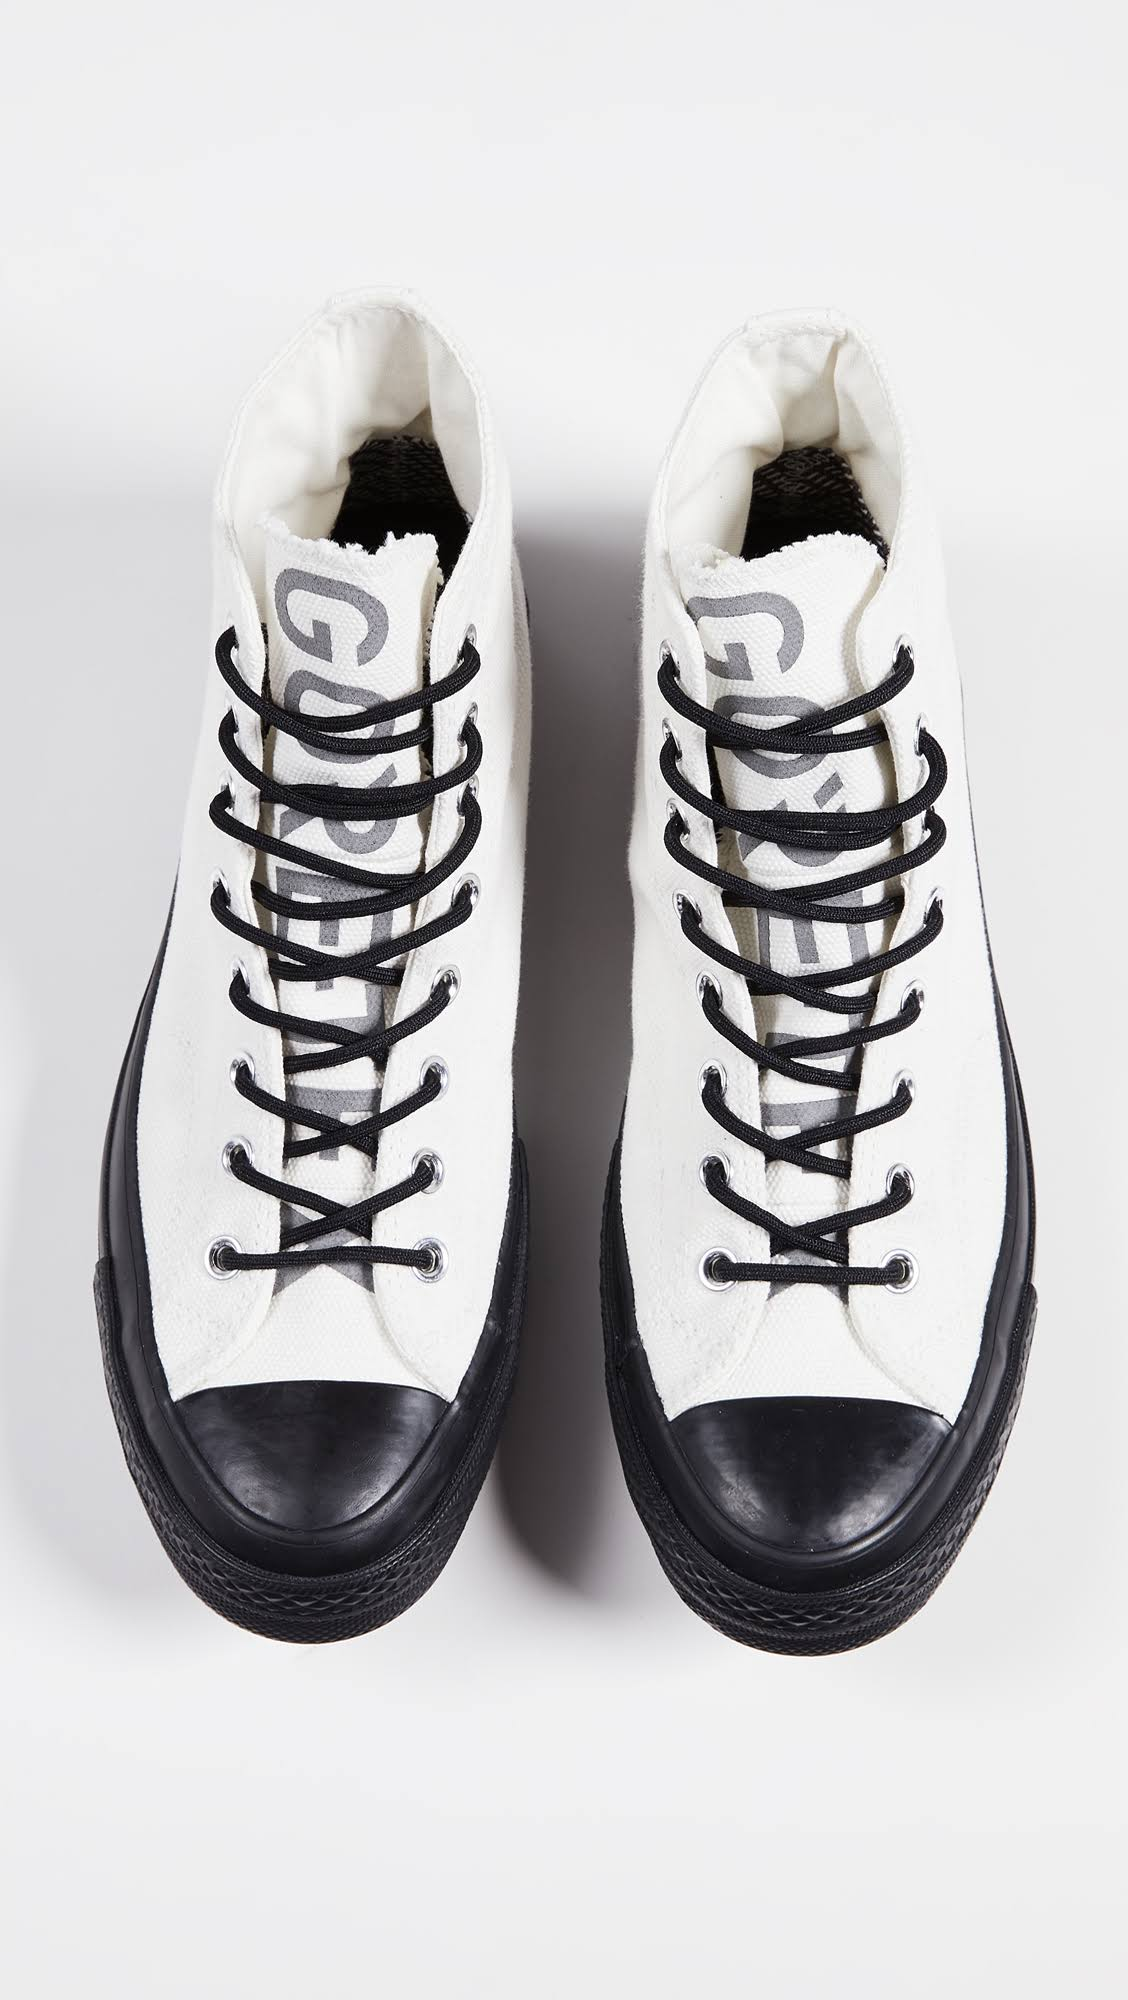 70 Converse Vintage Size White 9 Sneakerboots Chuck Taylor Mens ErxC1qrAw